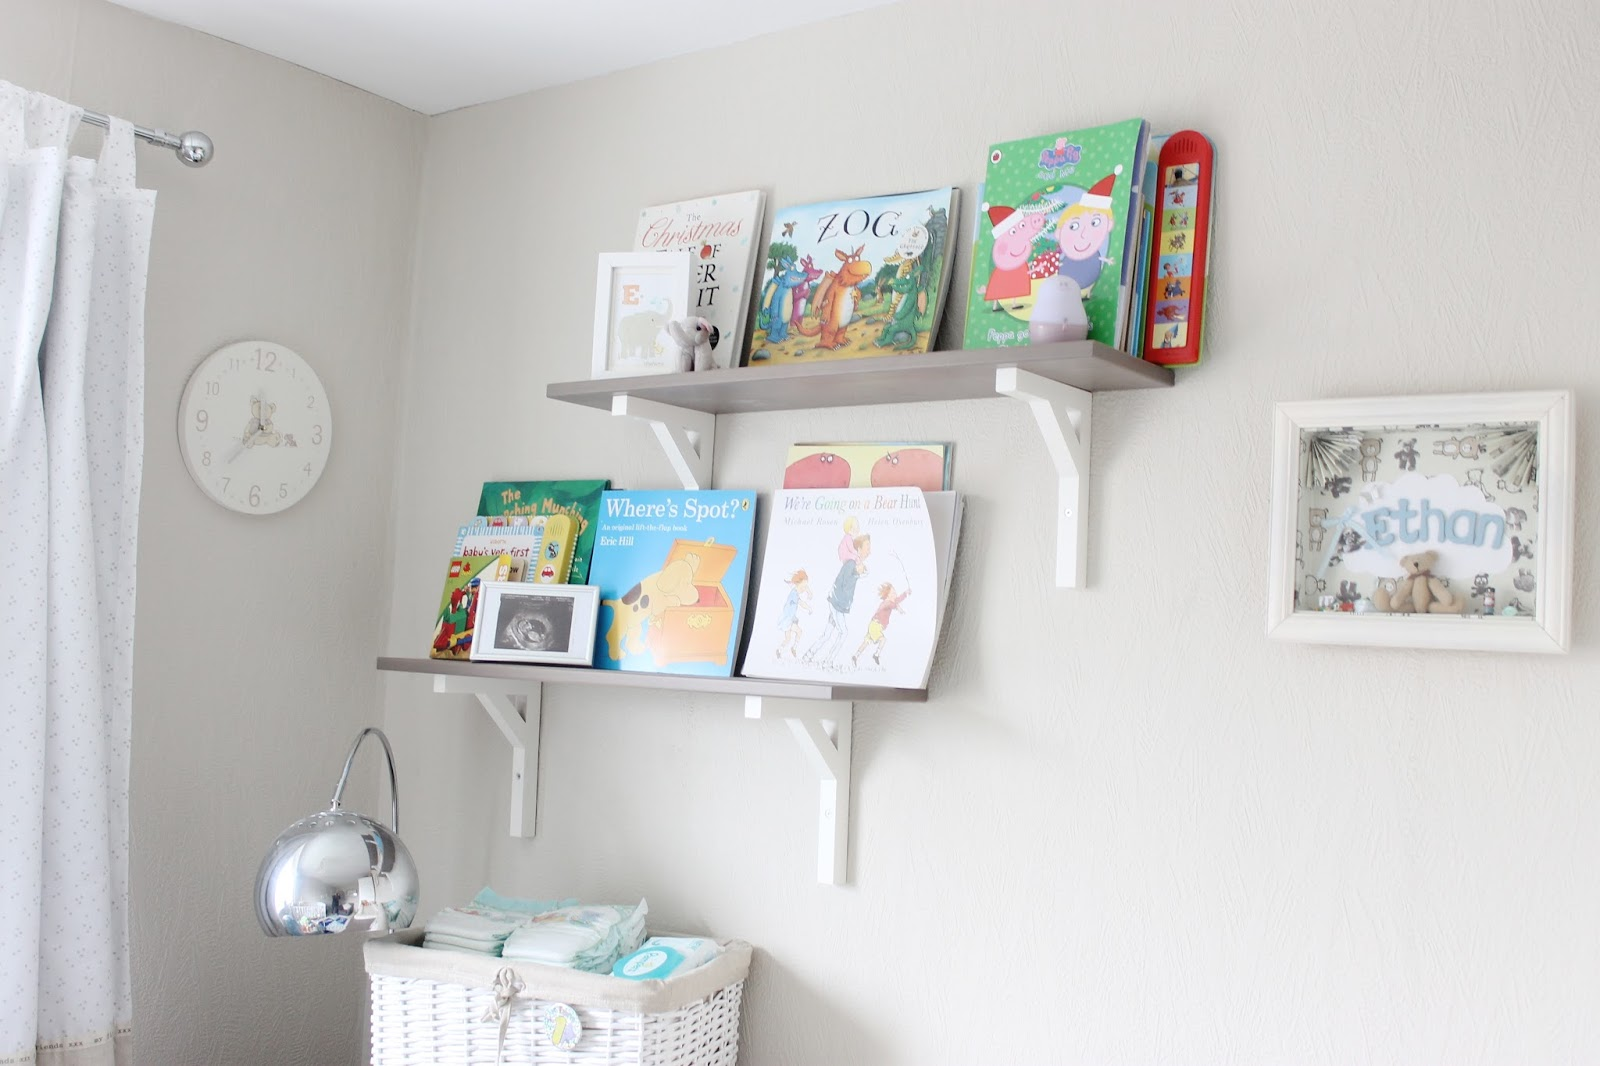 modern nursery, neutral nursery, nursery inspiration, grey-brown hemnes ikea, baby room, neutral babies room, house tour, modern decor, neutral house decor, baby book shelves